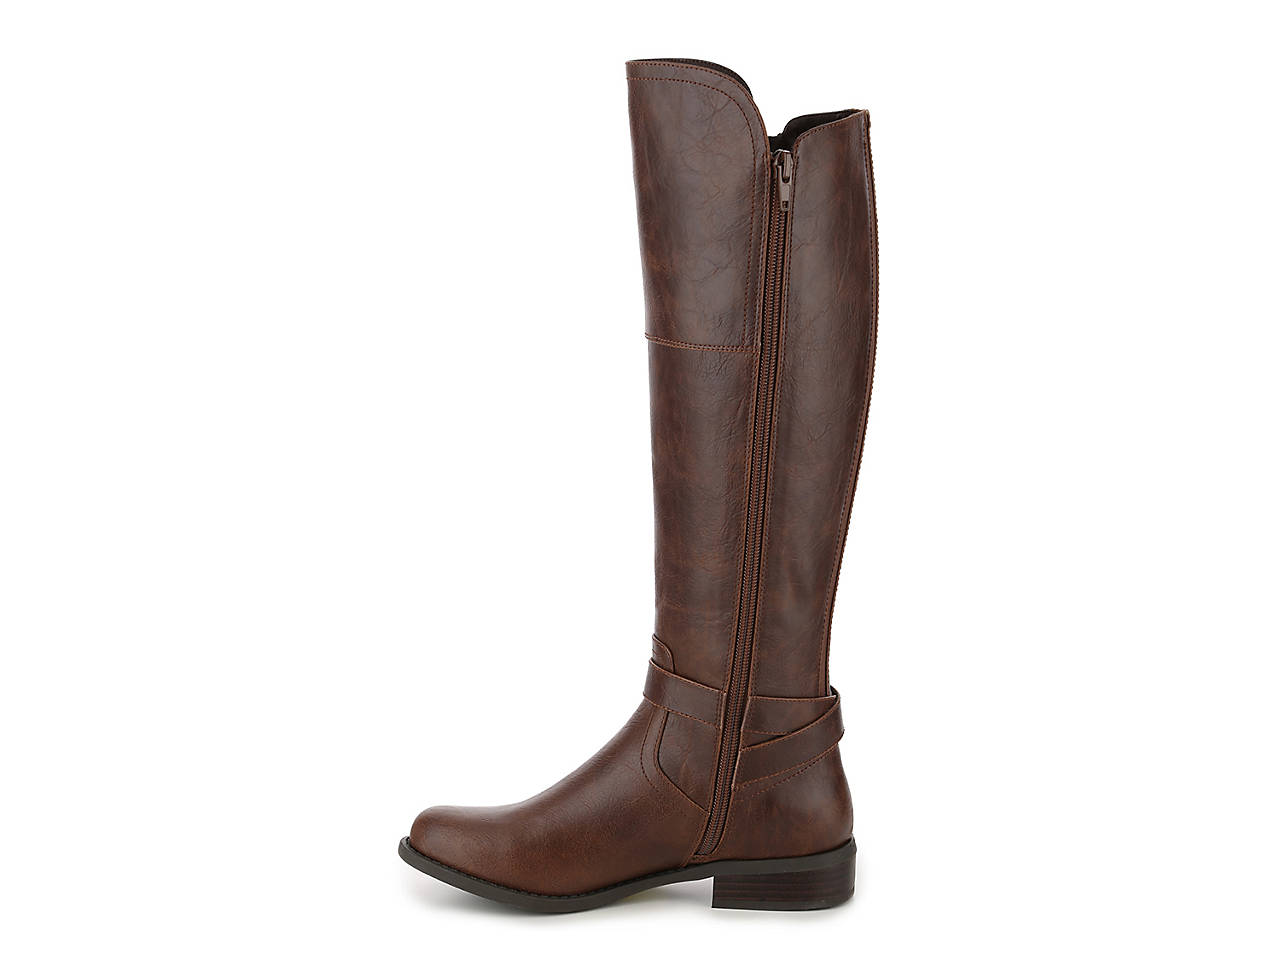 8914eb9291c G by GUESS Heylow Riding Boot Women s Shoes